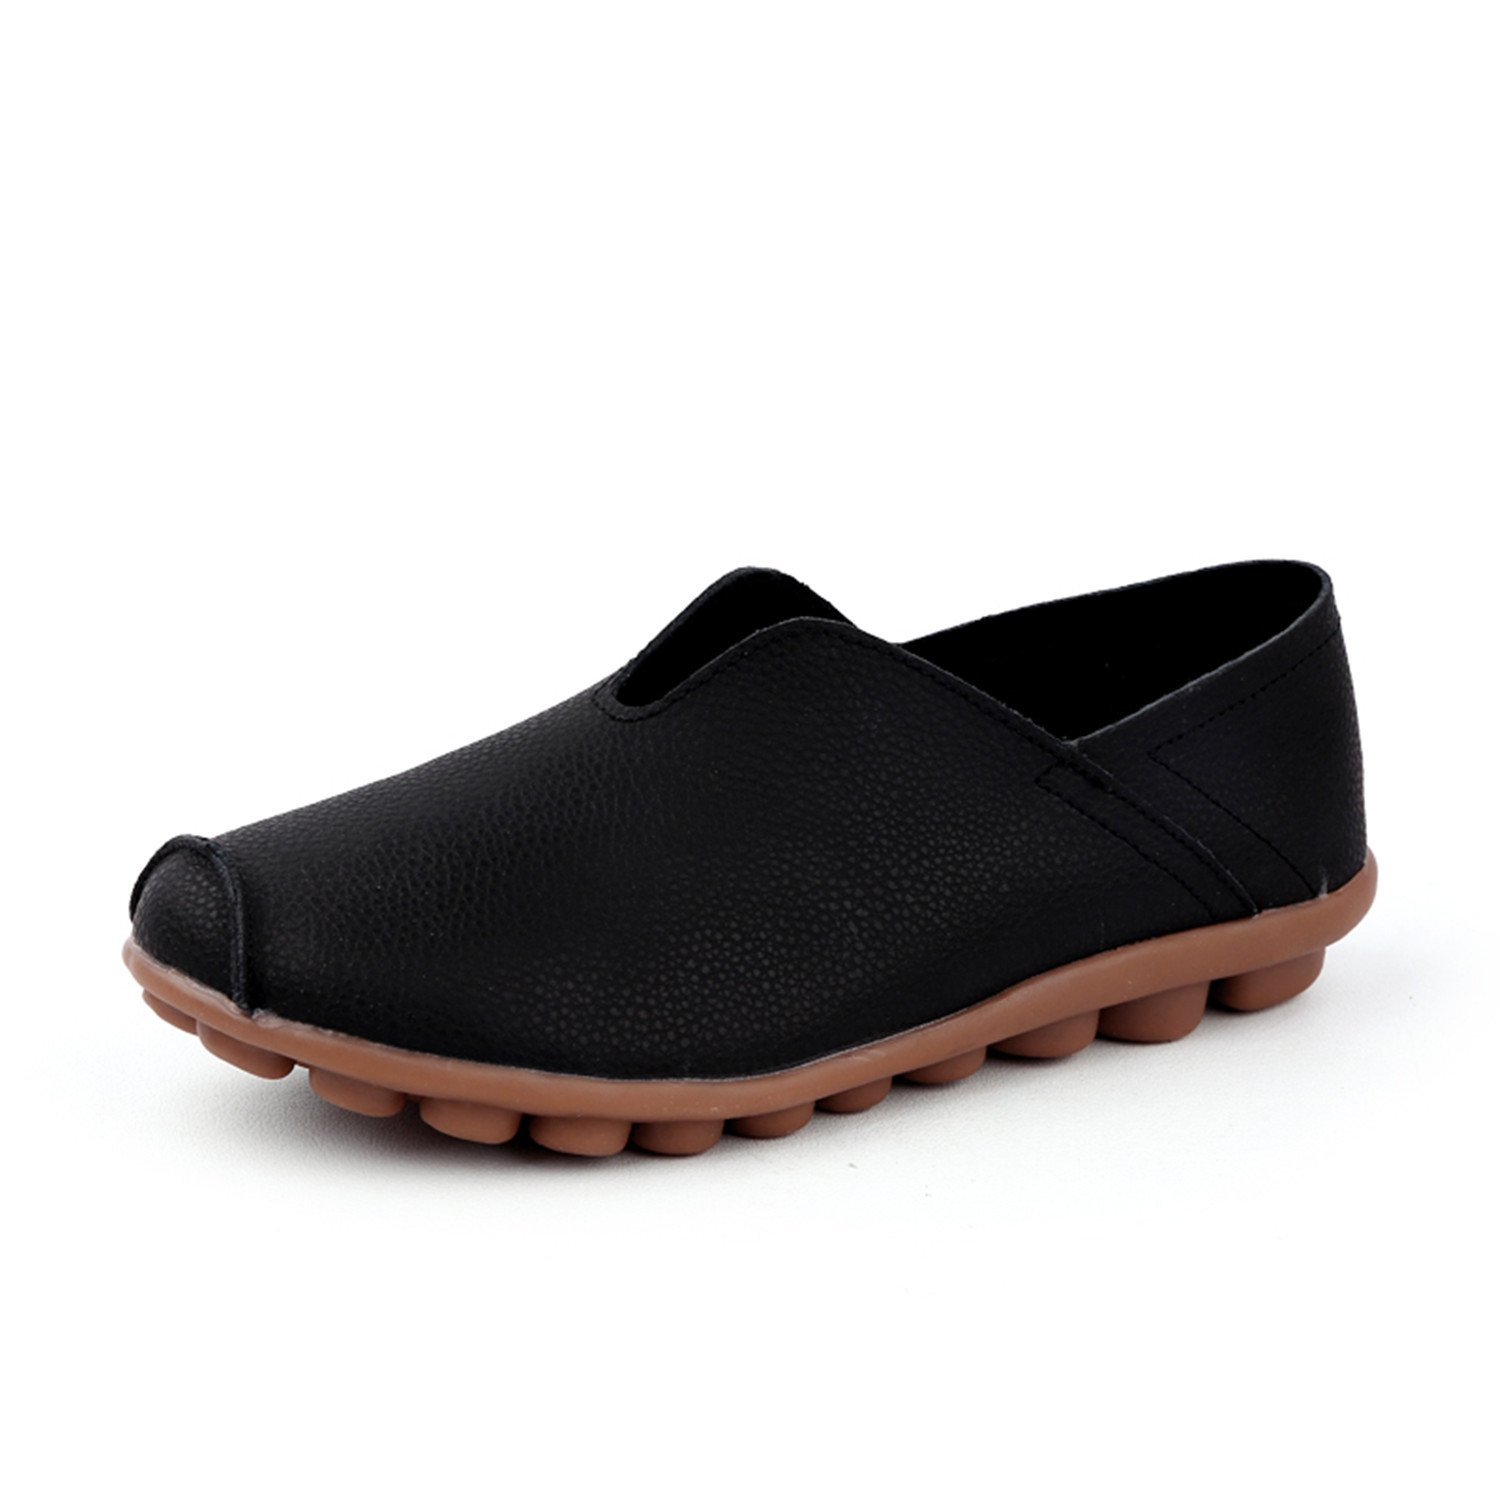 Amazon.com | Surprising Day Shoes Women New Women Shoes Moccasins Mother Loafers Soft Leisure Flats Female Driving Casual Fashion Footwear in 4 Colors Black ...